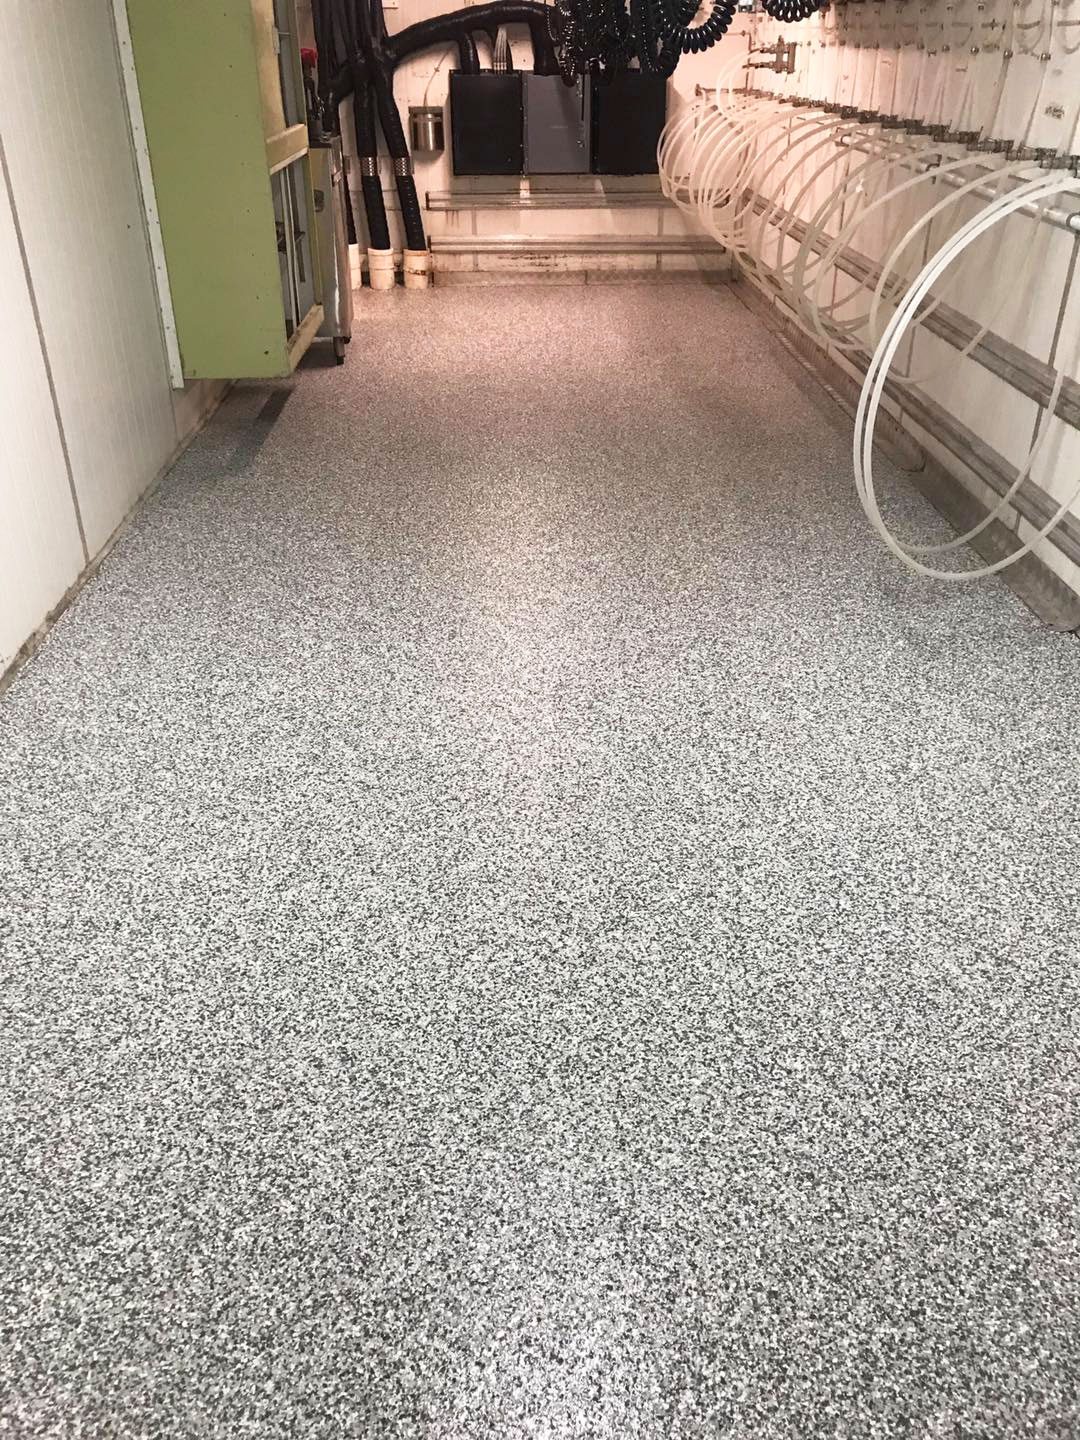 gallery-01-after-epoxy-flooring-stripproof-industries-byron-bay-the-rails